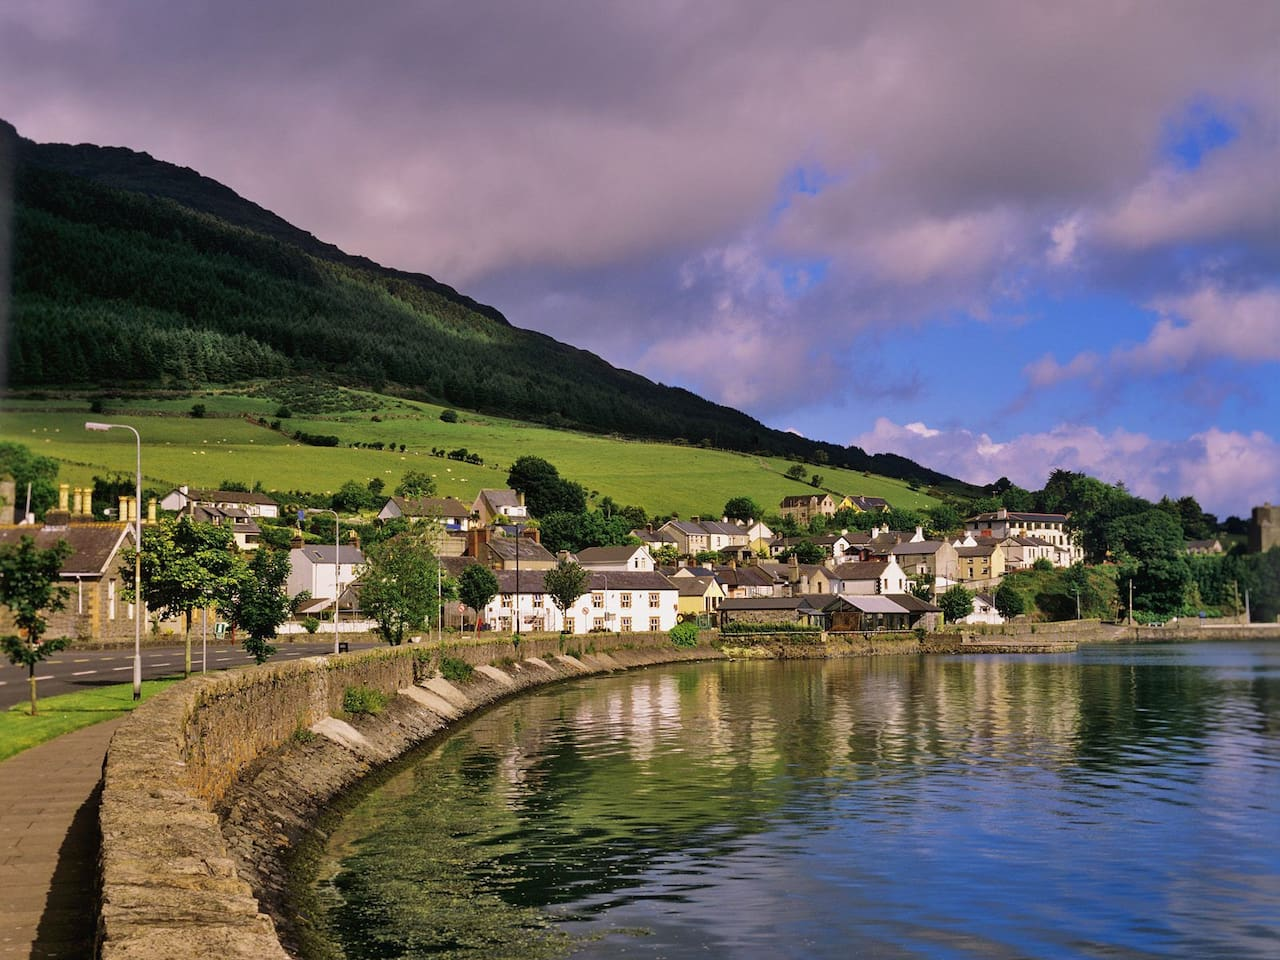 Medieval village of Carlingford with Slieve Foy as a backdrop